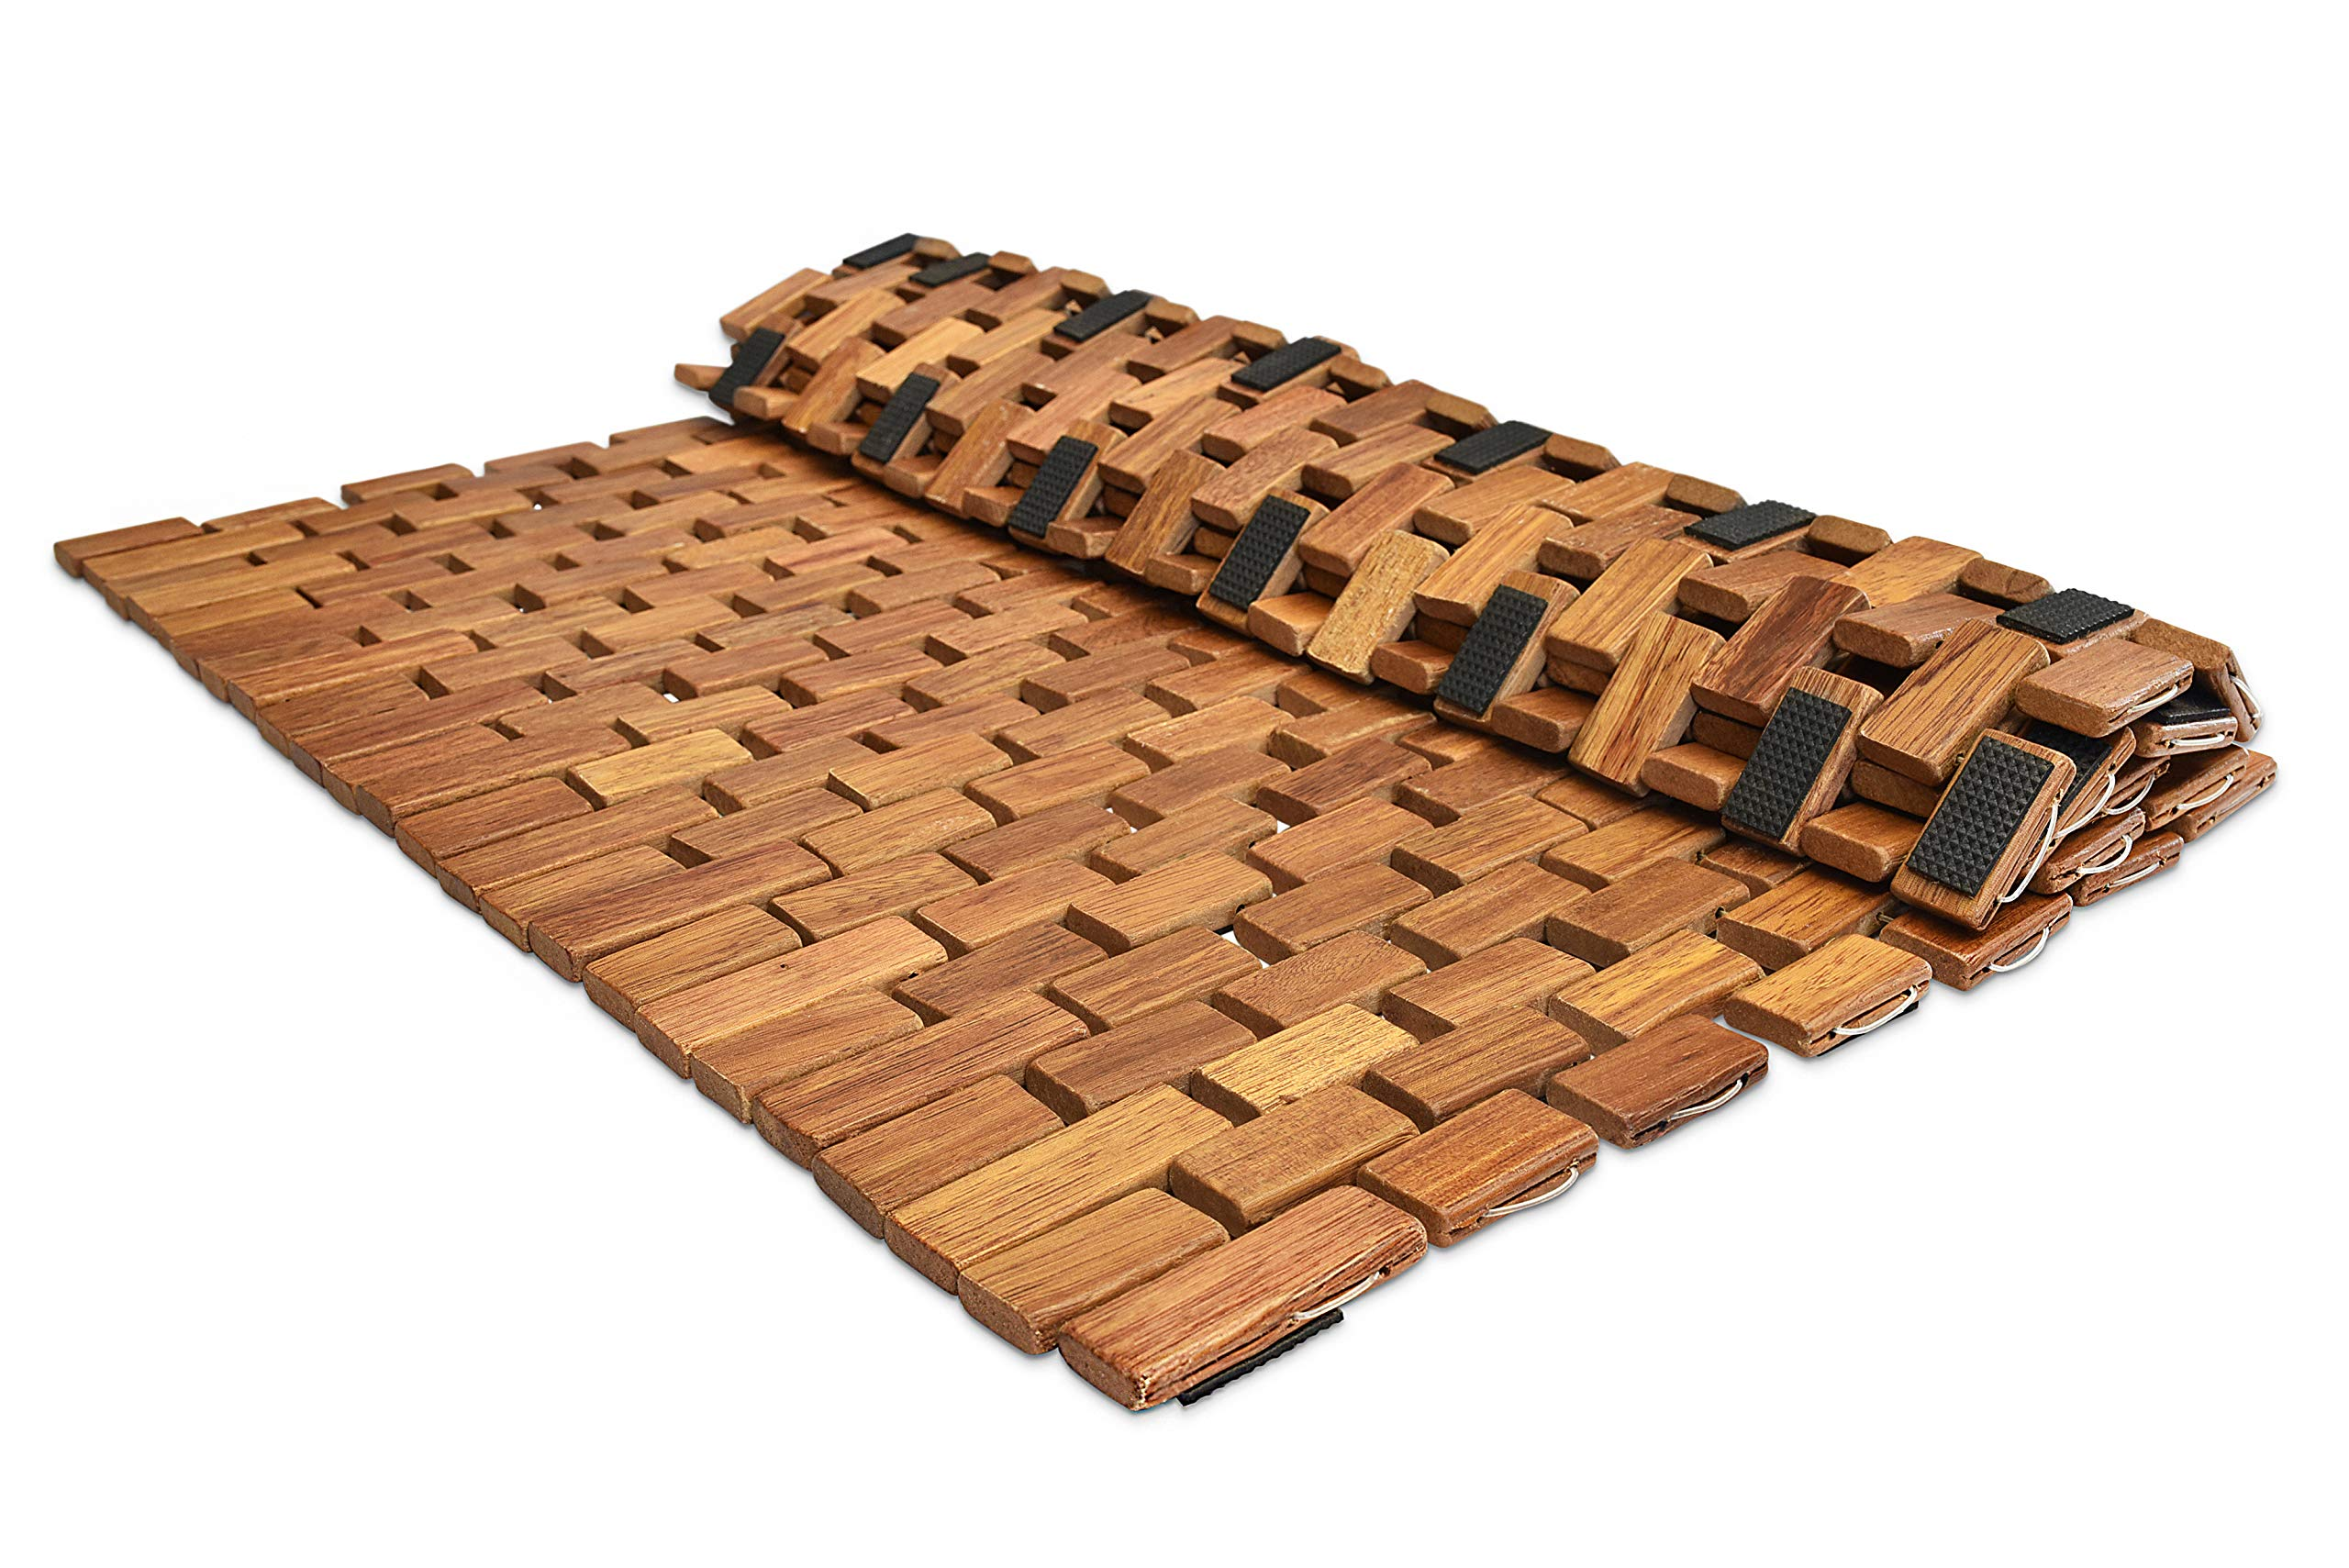 Large Folding Teak Bath Mat with Non Slip Grips | Mildew Resistant Teak Shower Mat Treated with Natural Teak Oil | Made in Indonesia with Legally Sourced Wood | 27.5''x19.5''